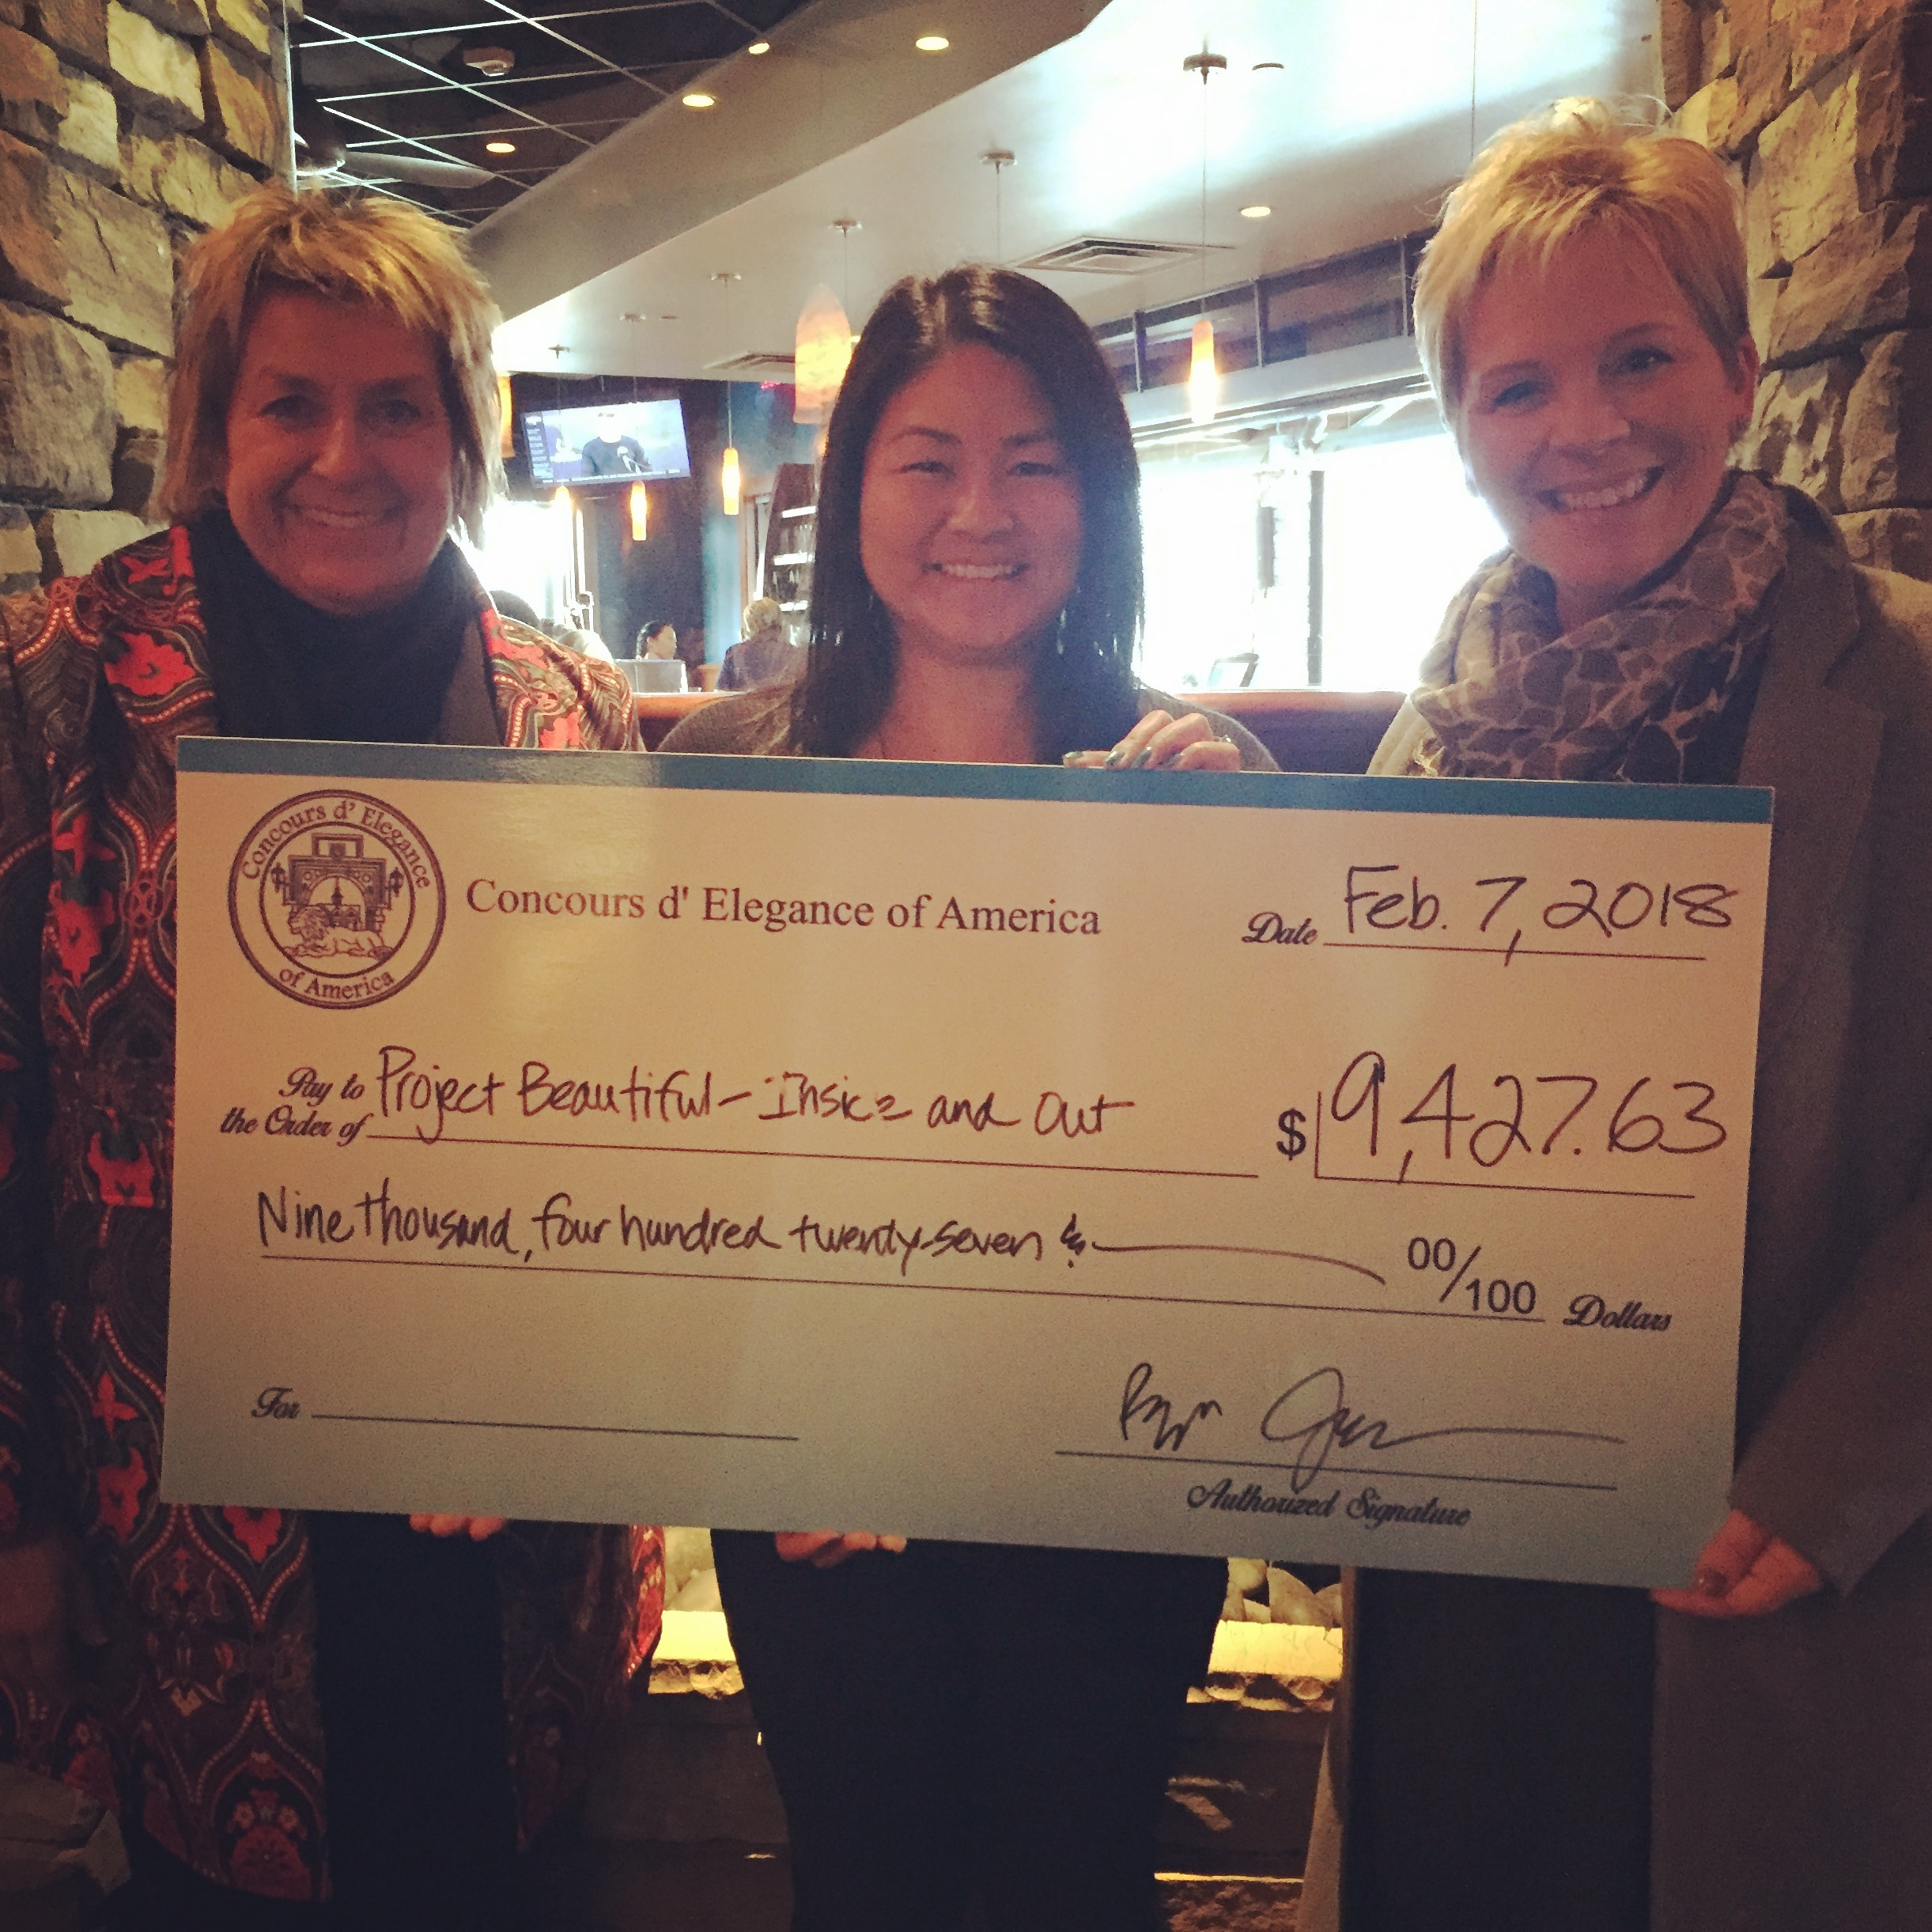 Concours Executive Director, Diane Flis-Schneider (left), and Events and Operations Coordinator, Tara Noftz (right), present donation check to Project Beautiful Executive Director, Doris Gilles (center).